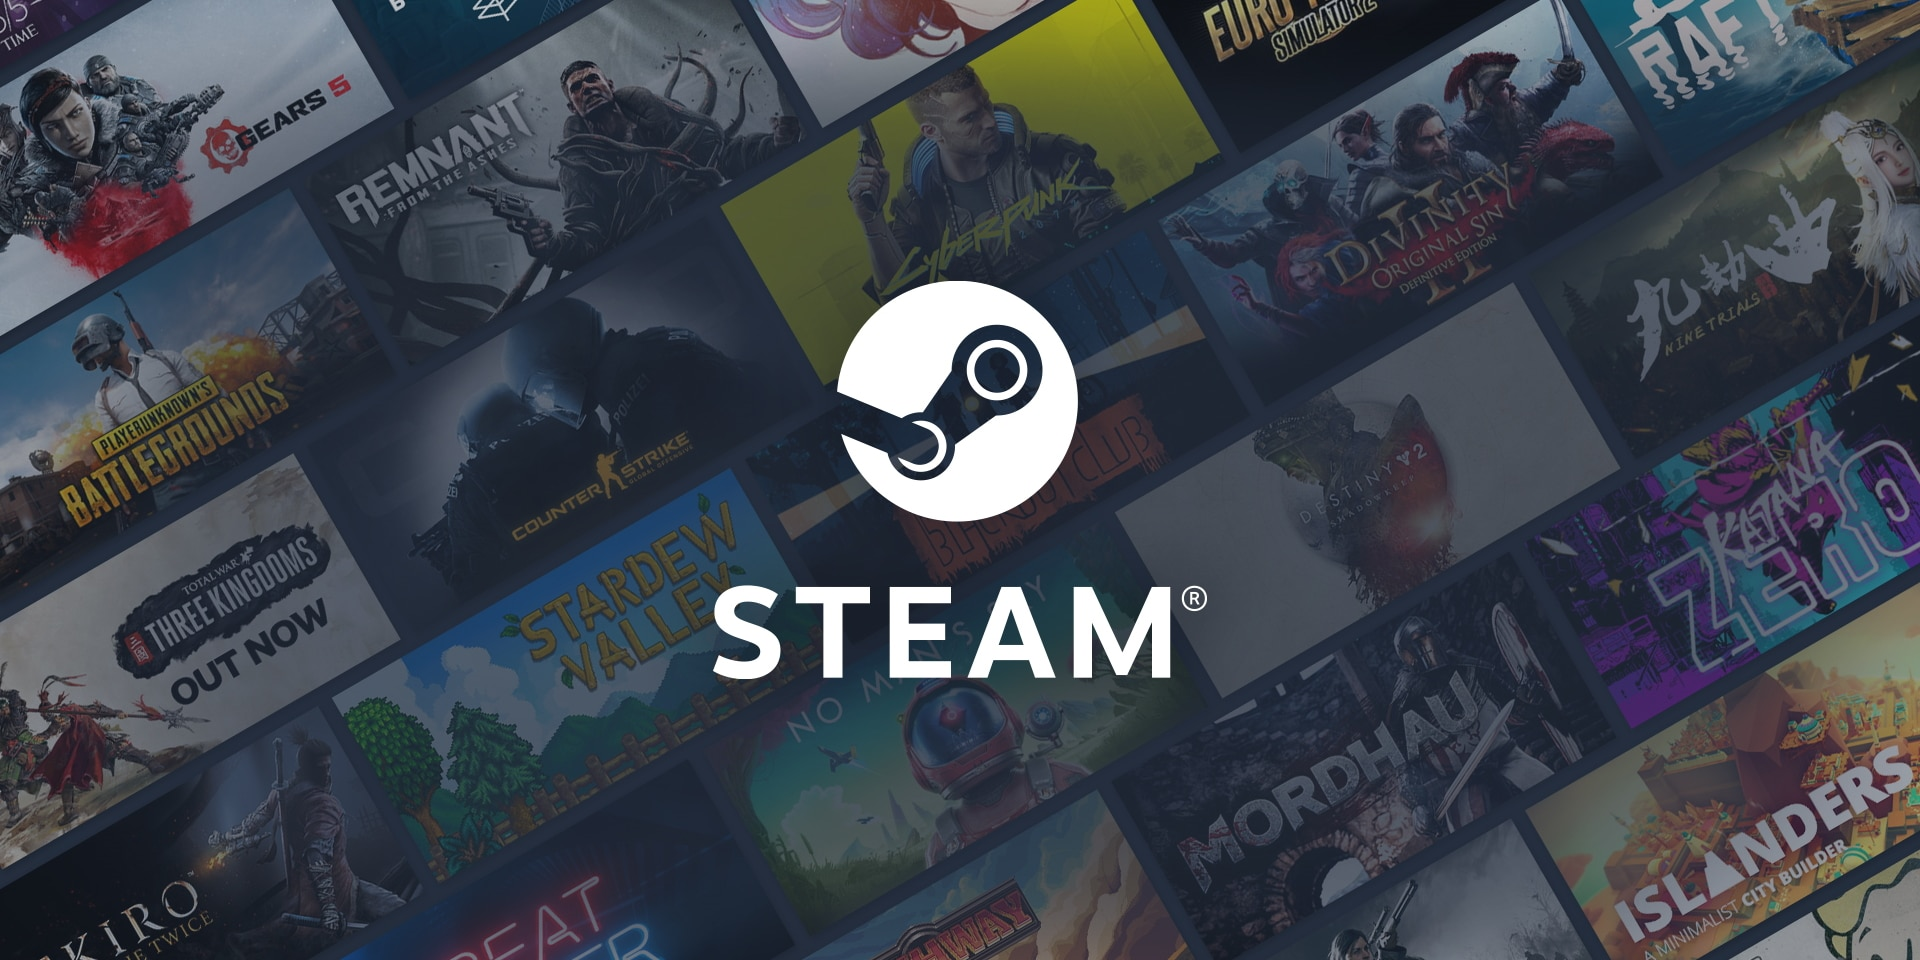 Introducing Geek to Geek Media's Steam Group – With Among Us & More!